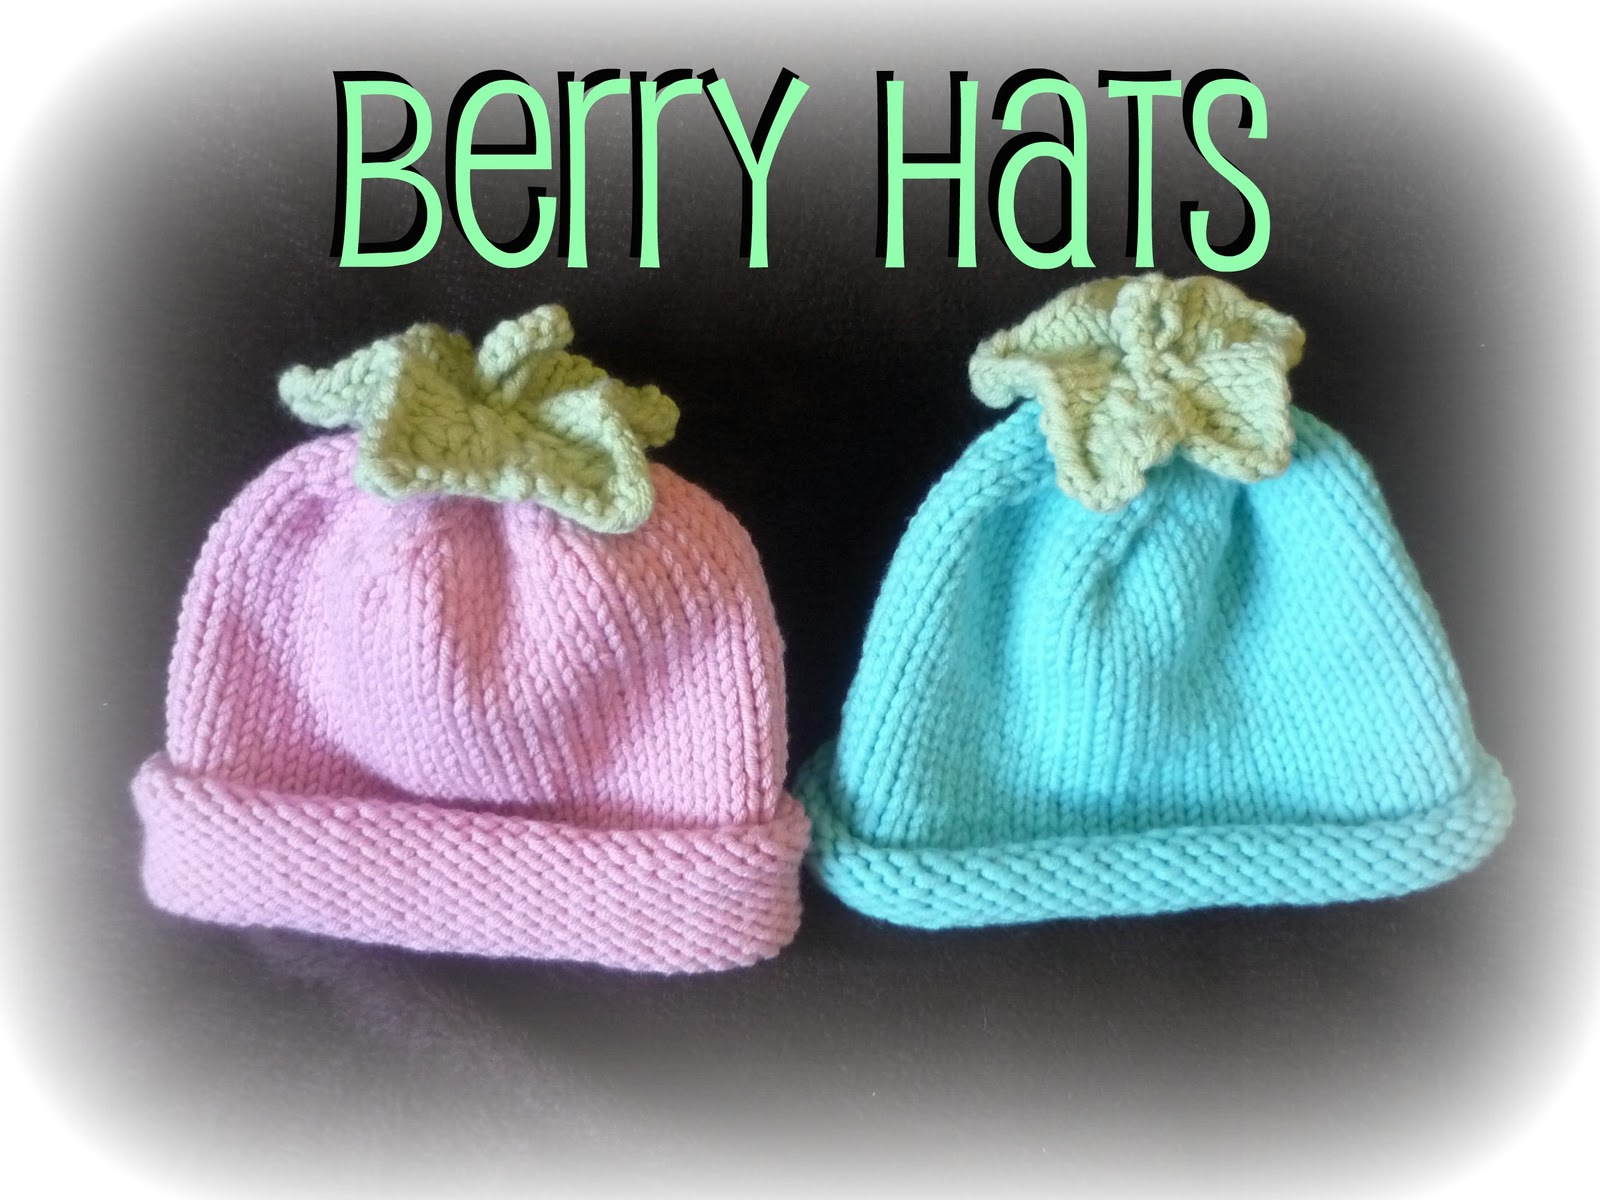 Snips spice knitted berry hats knitted berry hats this is an easy pattern to knit for a premature baby bankloansurffo Gallery